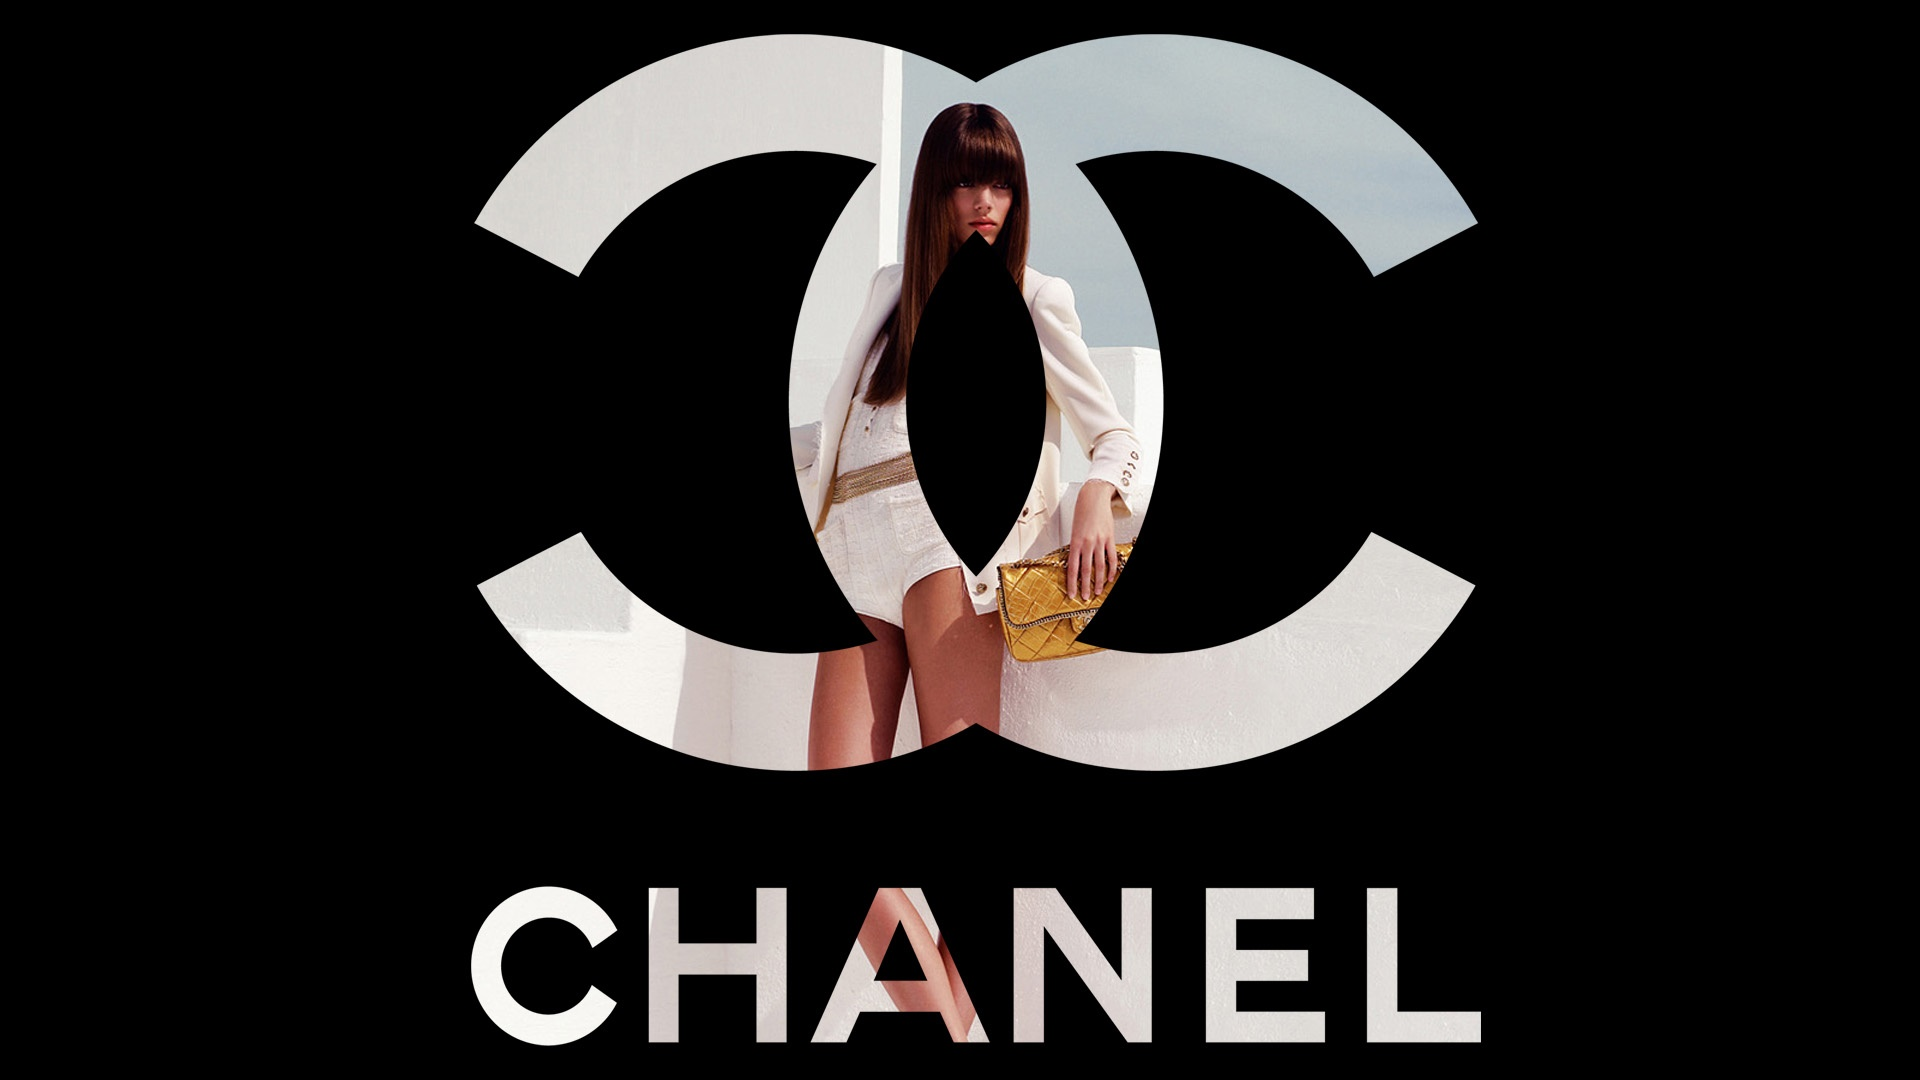 Logo Chanel Wallpapers HD 1920x1080